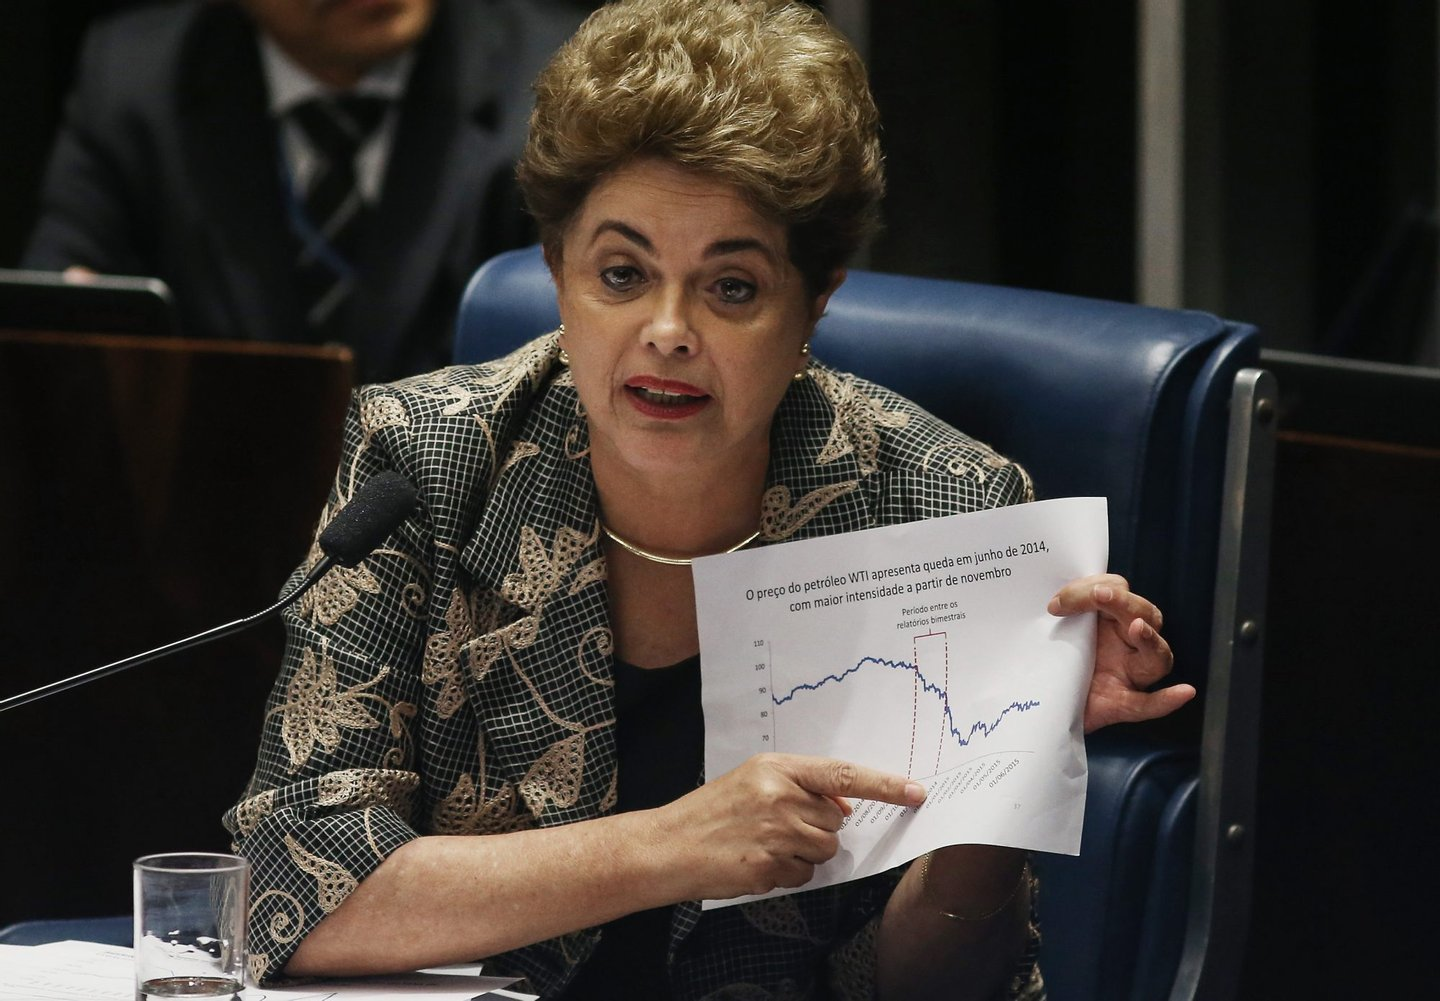 BRASILIA, BRAZIL - AUGUST 29: Suspended President Dilma Rousseff points to an economic chart displaying oil prices while answering a question from a Senator on the Senate floor during her impeachment trial on August 29, 2016 in Brasilia, Brasil. Senators will vote in the coming days whether to impeach and permanently remove Rousseff from office. (Photo by Mario Tama/Getty Images)